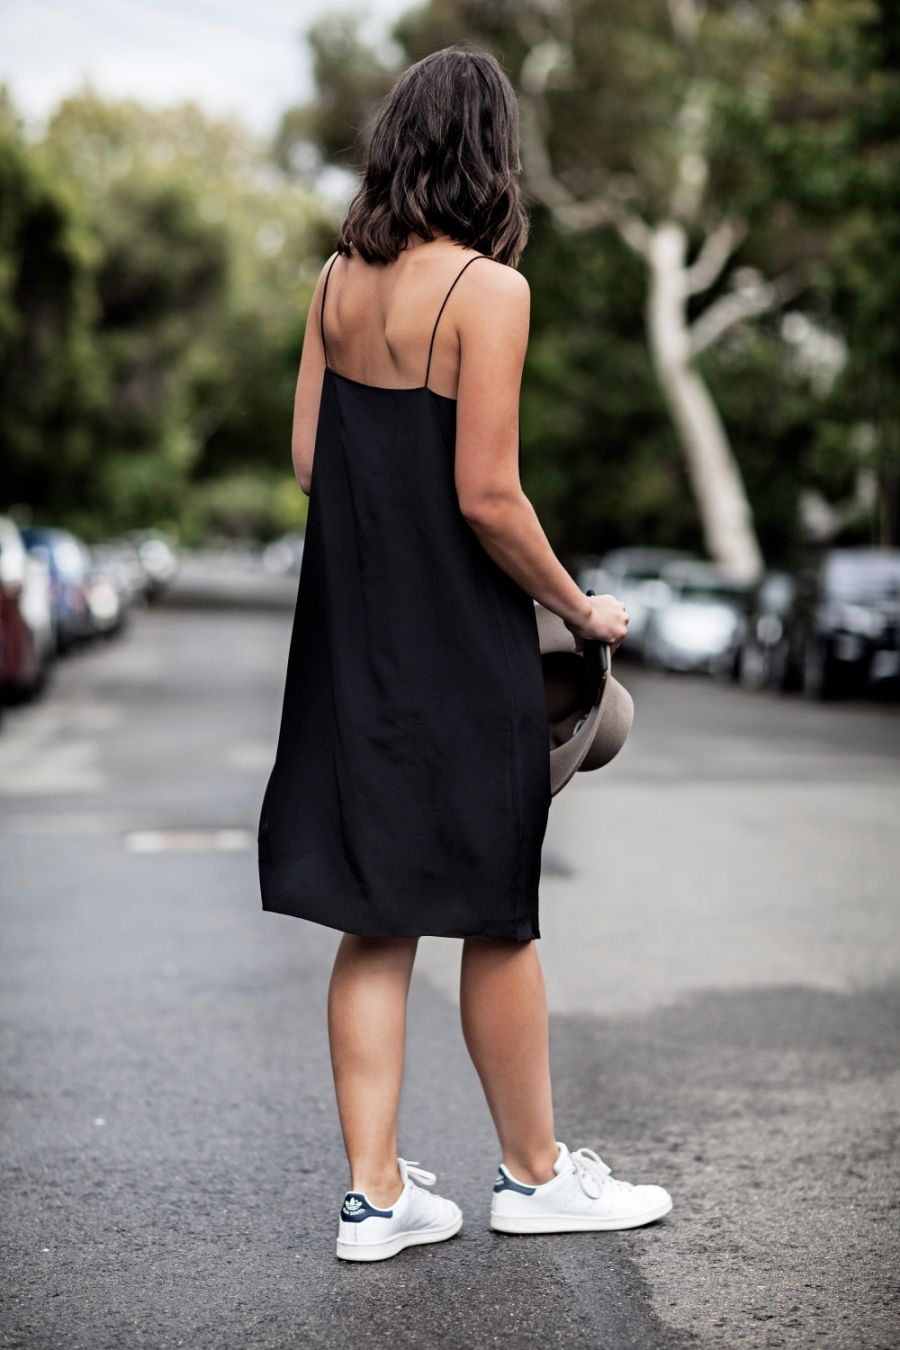 black slip dress white trainers fashion blogger ootd outfit chic